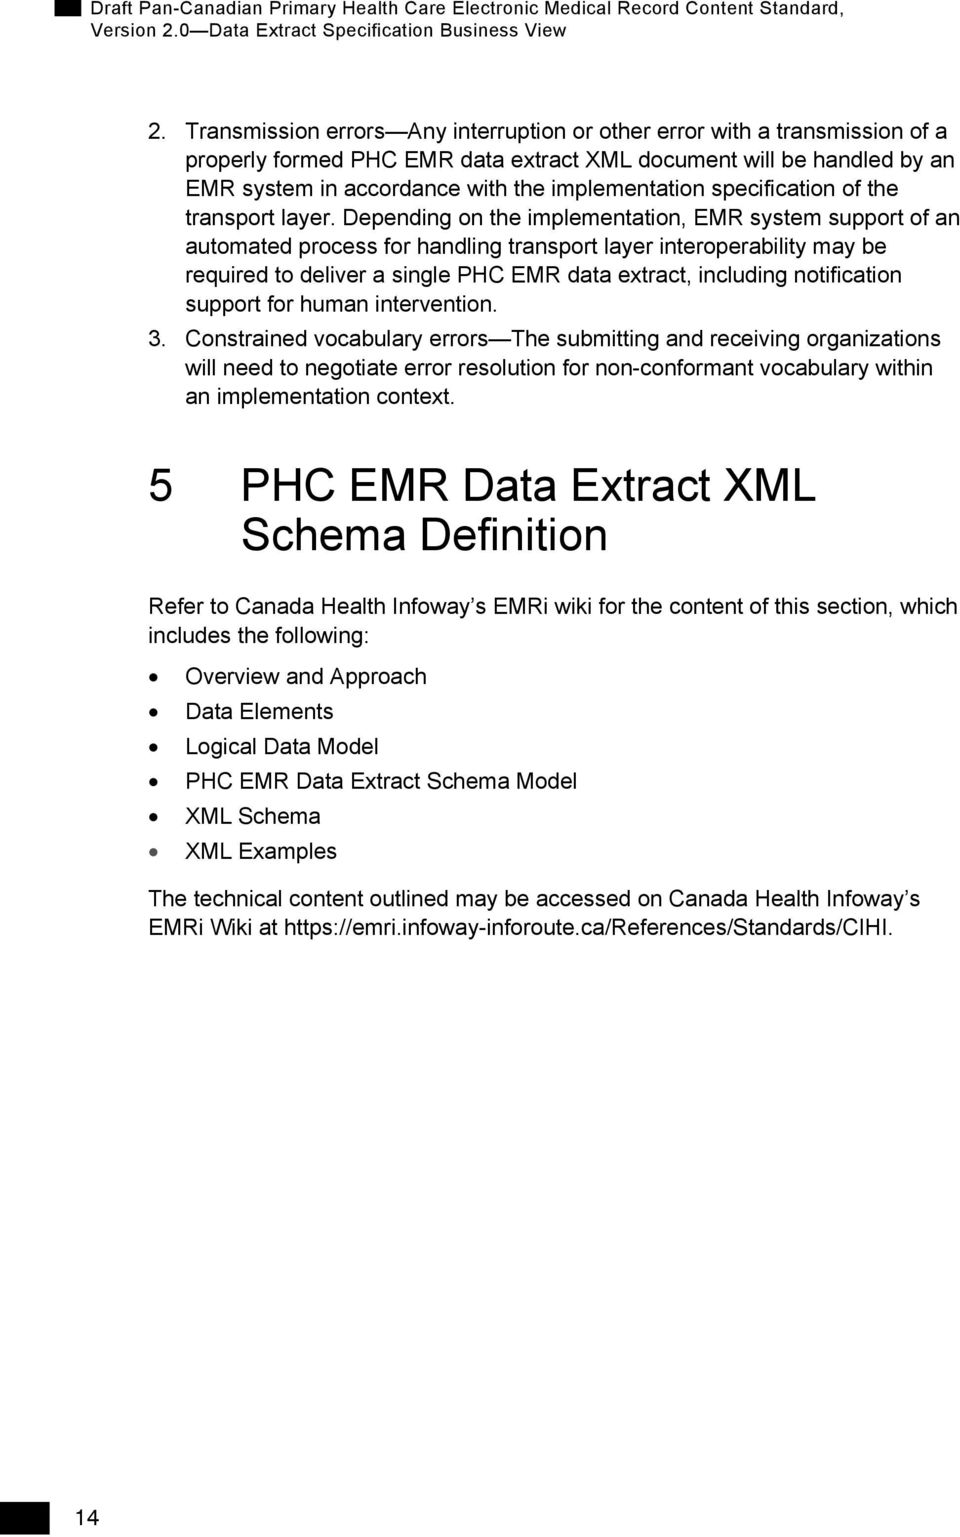 Depending on the implementation, EMR system support of an automated process for handling transport layer interoperability may be required to deliver a single PHC EMR data extract, including